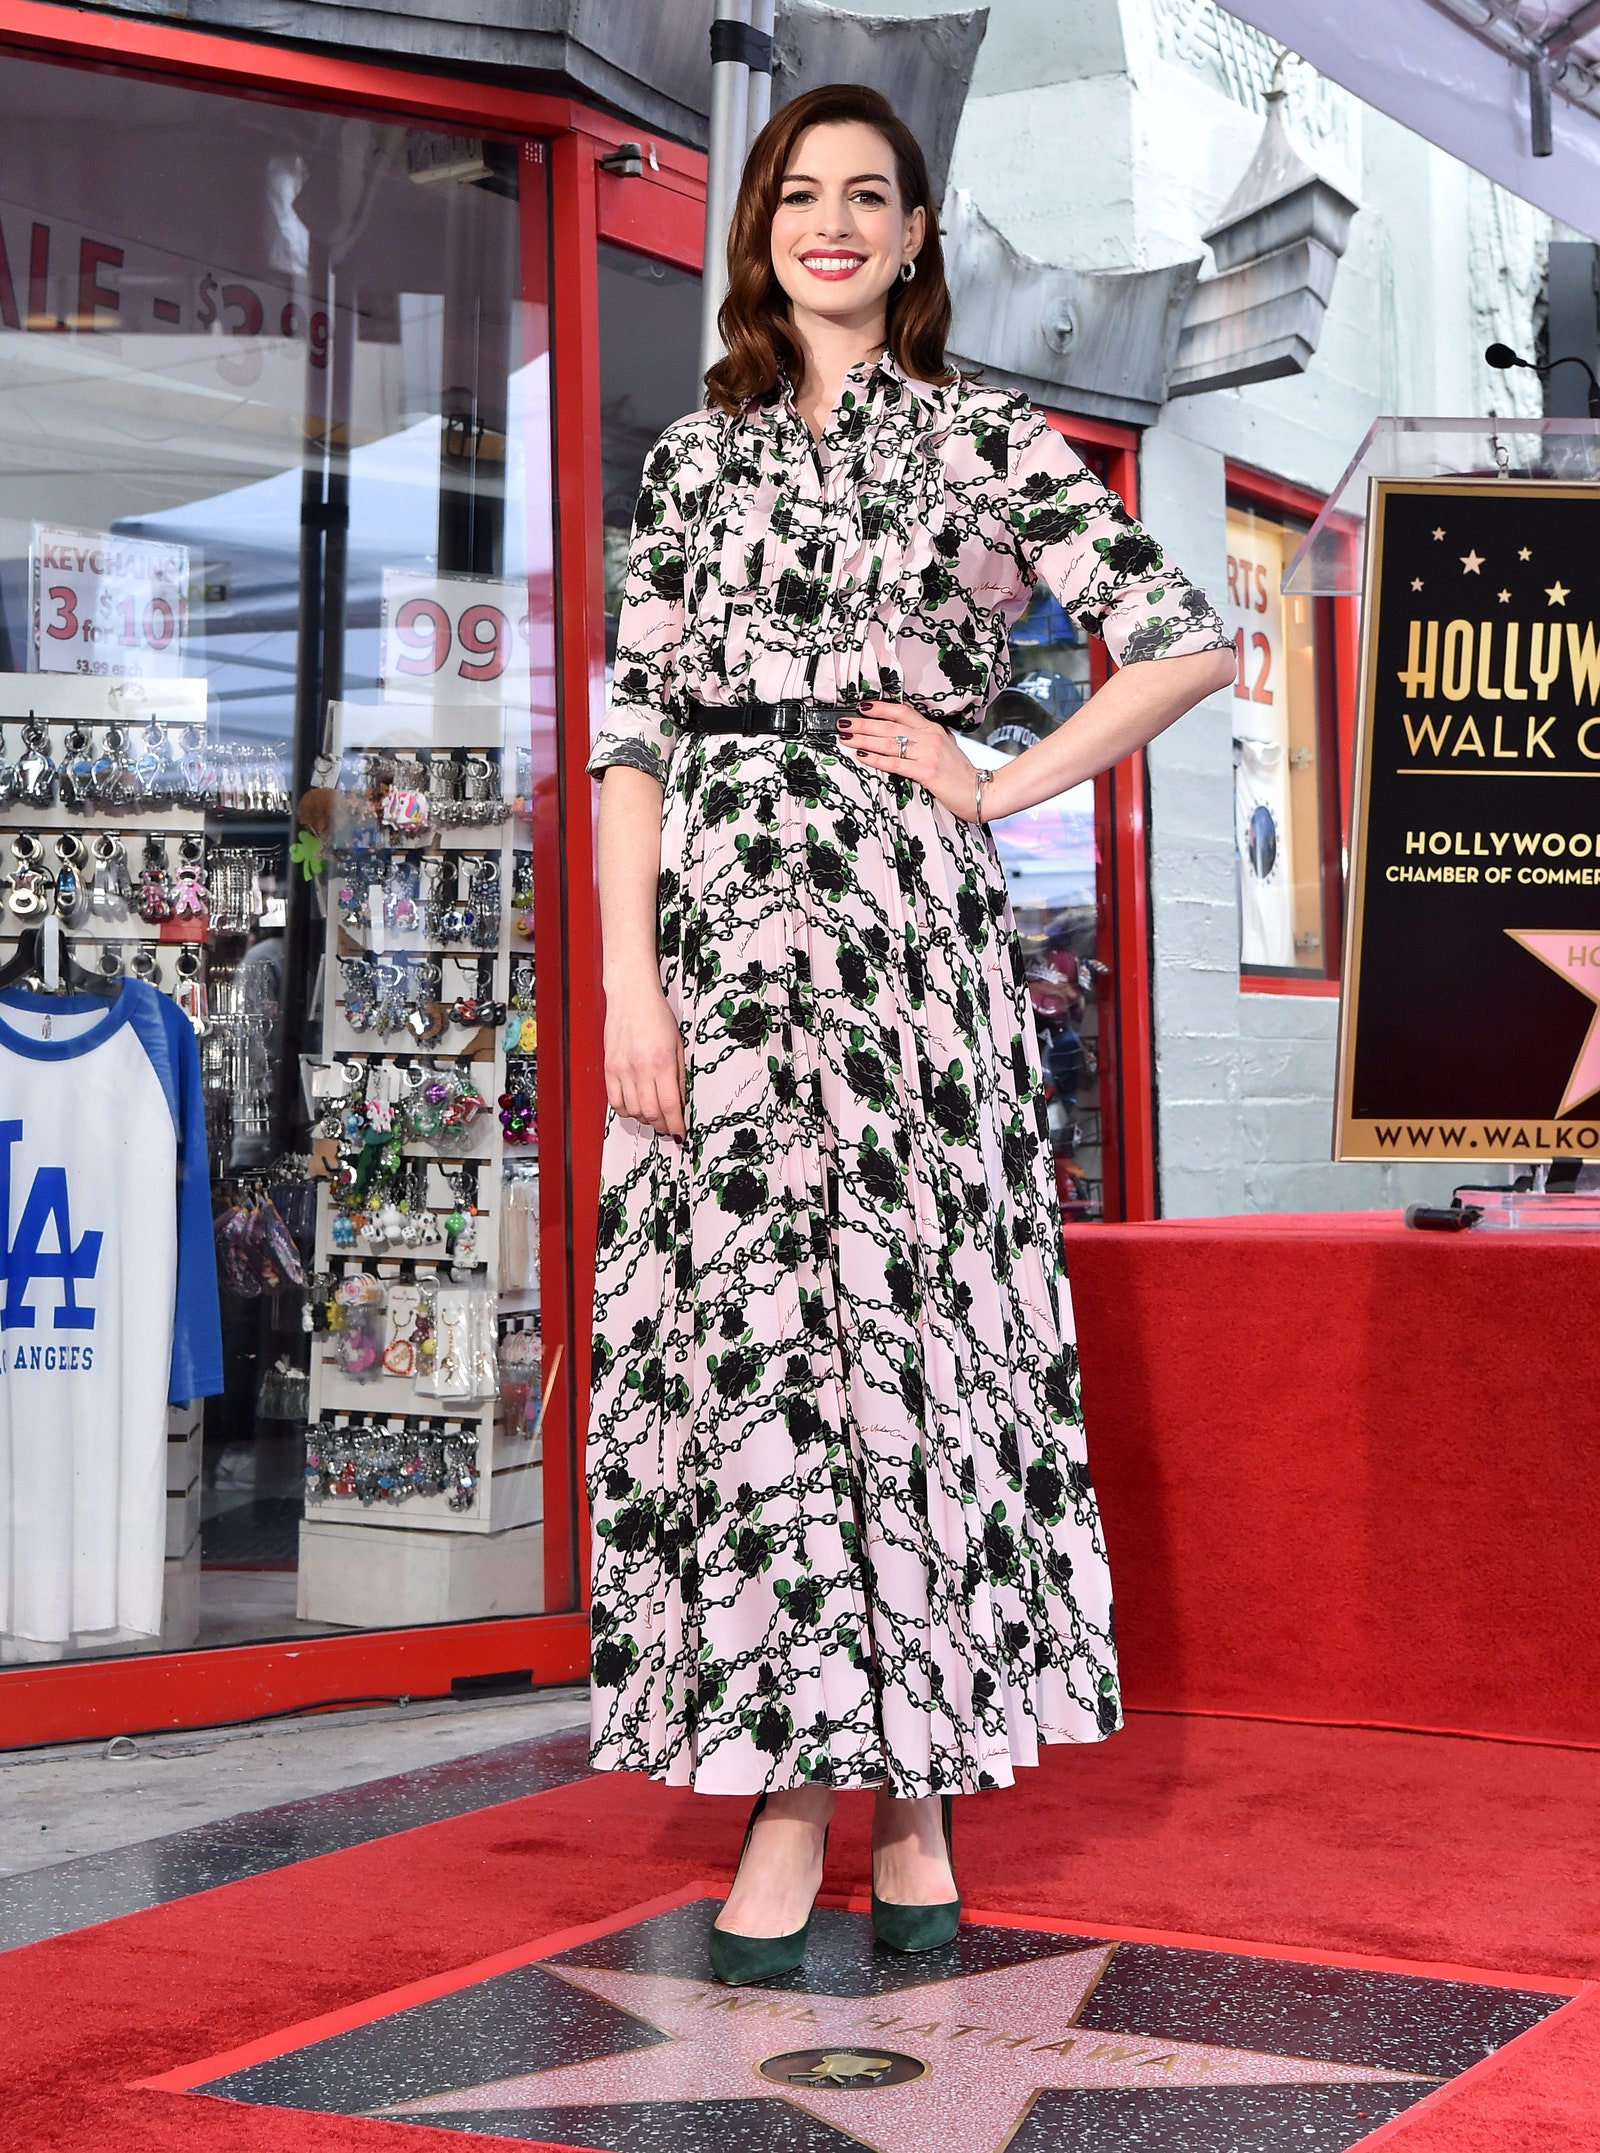 Anne Hathaway (Valentino) - Hollywood Walk of Fame, 2019